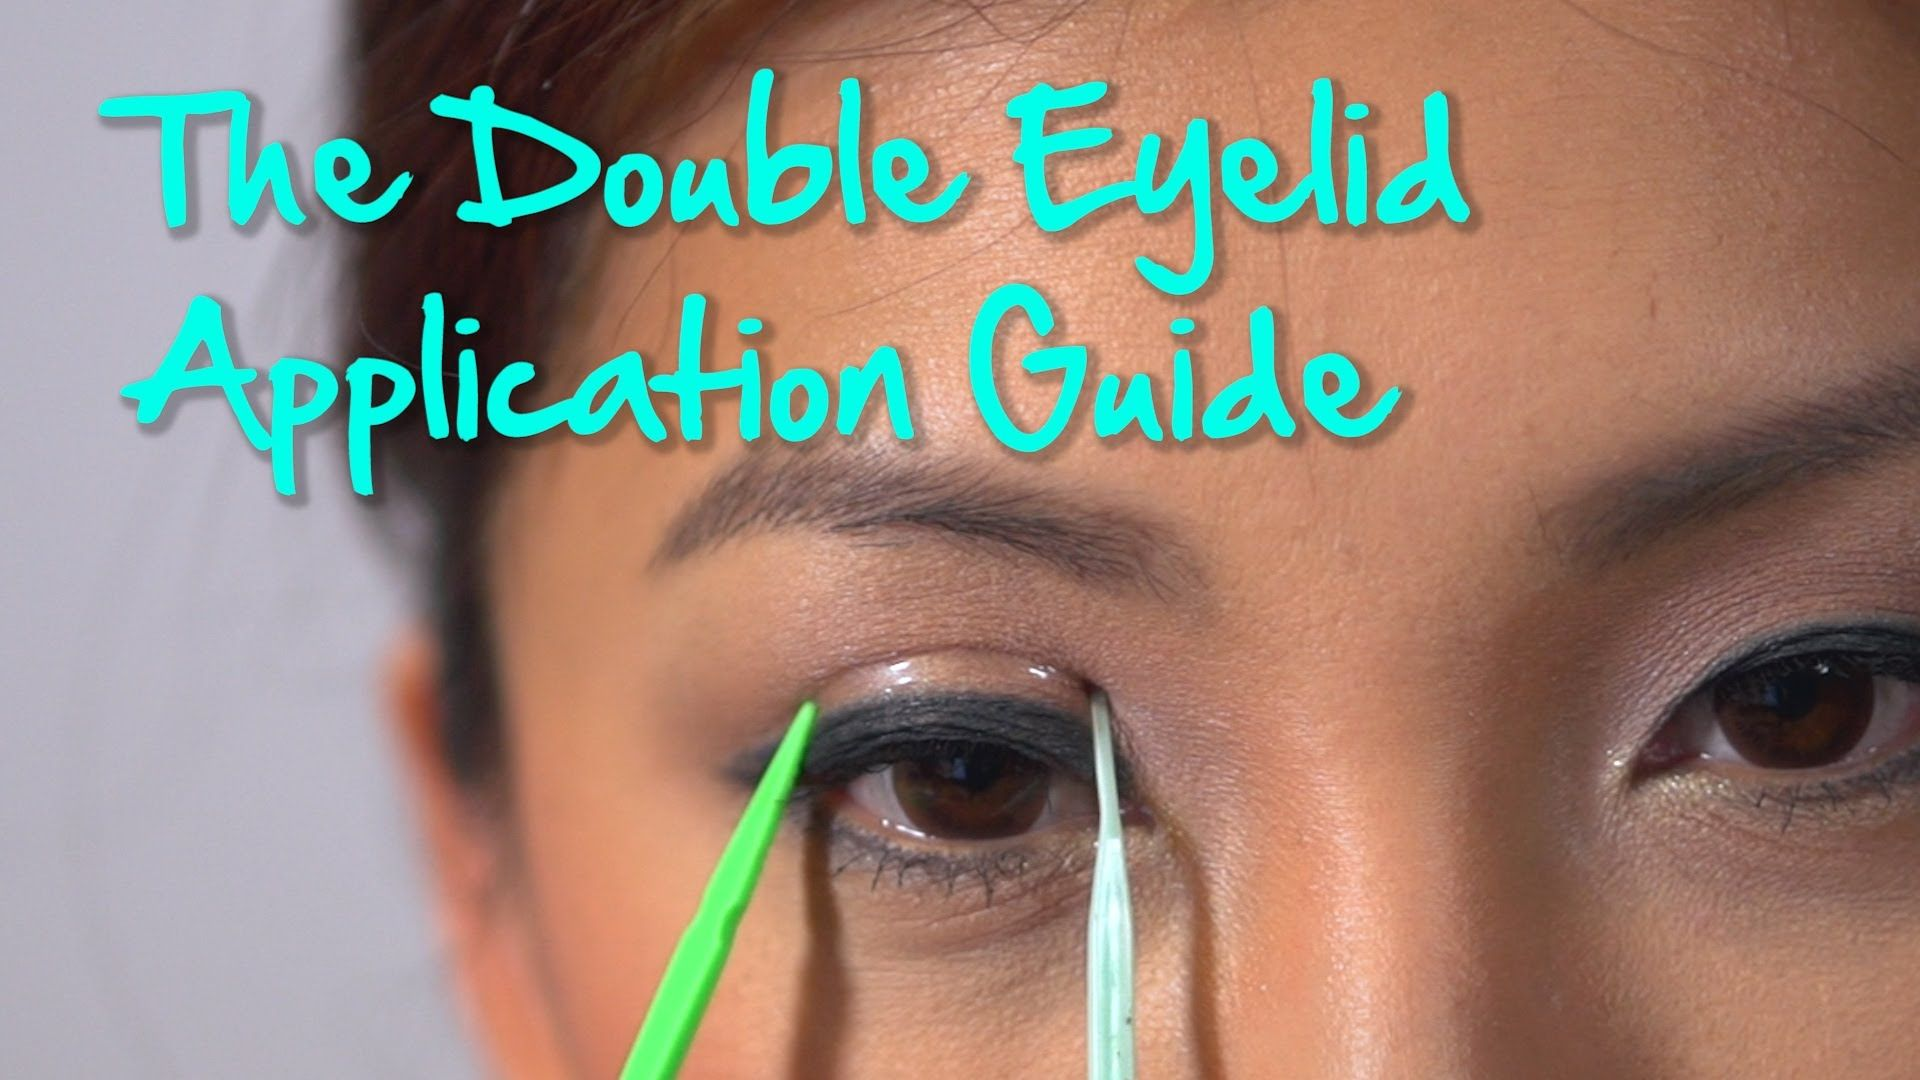 c67bb26e4e4b261fbe917092af8b83d2 - How To Get Rid Of Double Eyelids Without Surgery